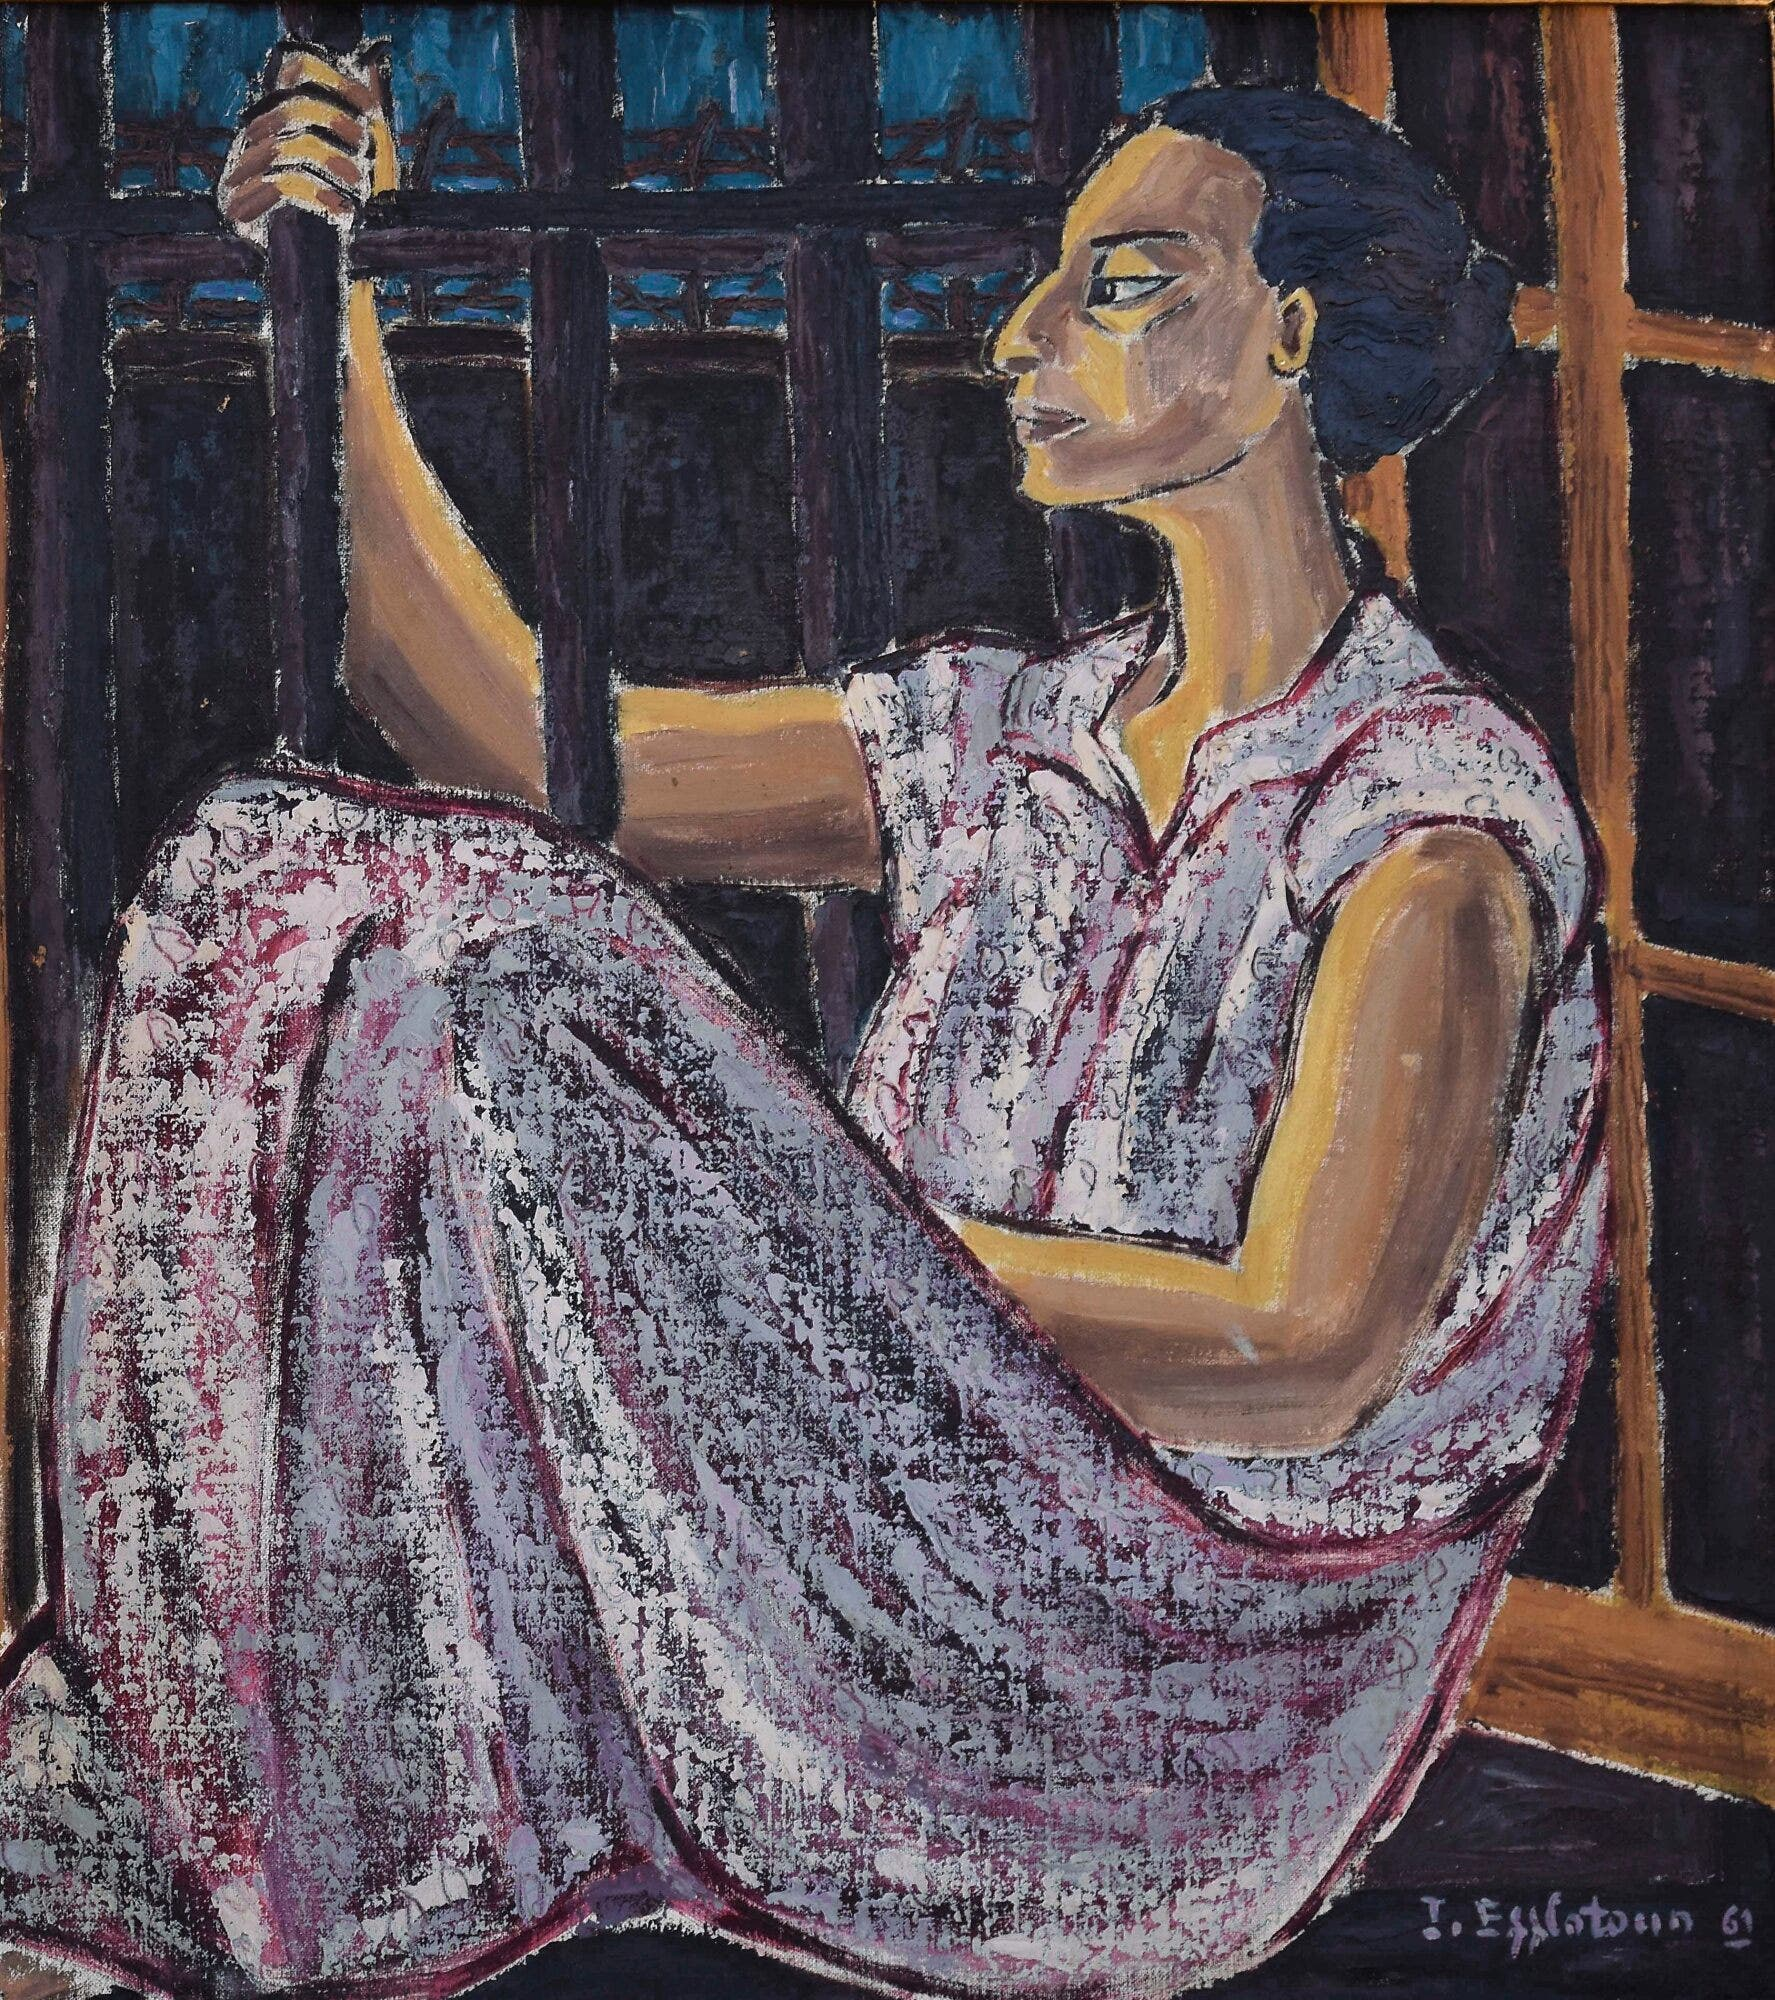 Inji Efflatoun, Dreams of the Detainee, 1961, Oil on canvas, 50 x 40 cm. (Image courtesy of Barjeel Art Foundation, Sharjah.)